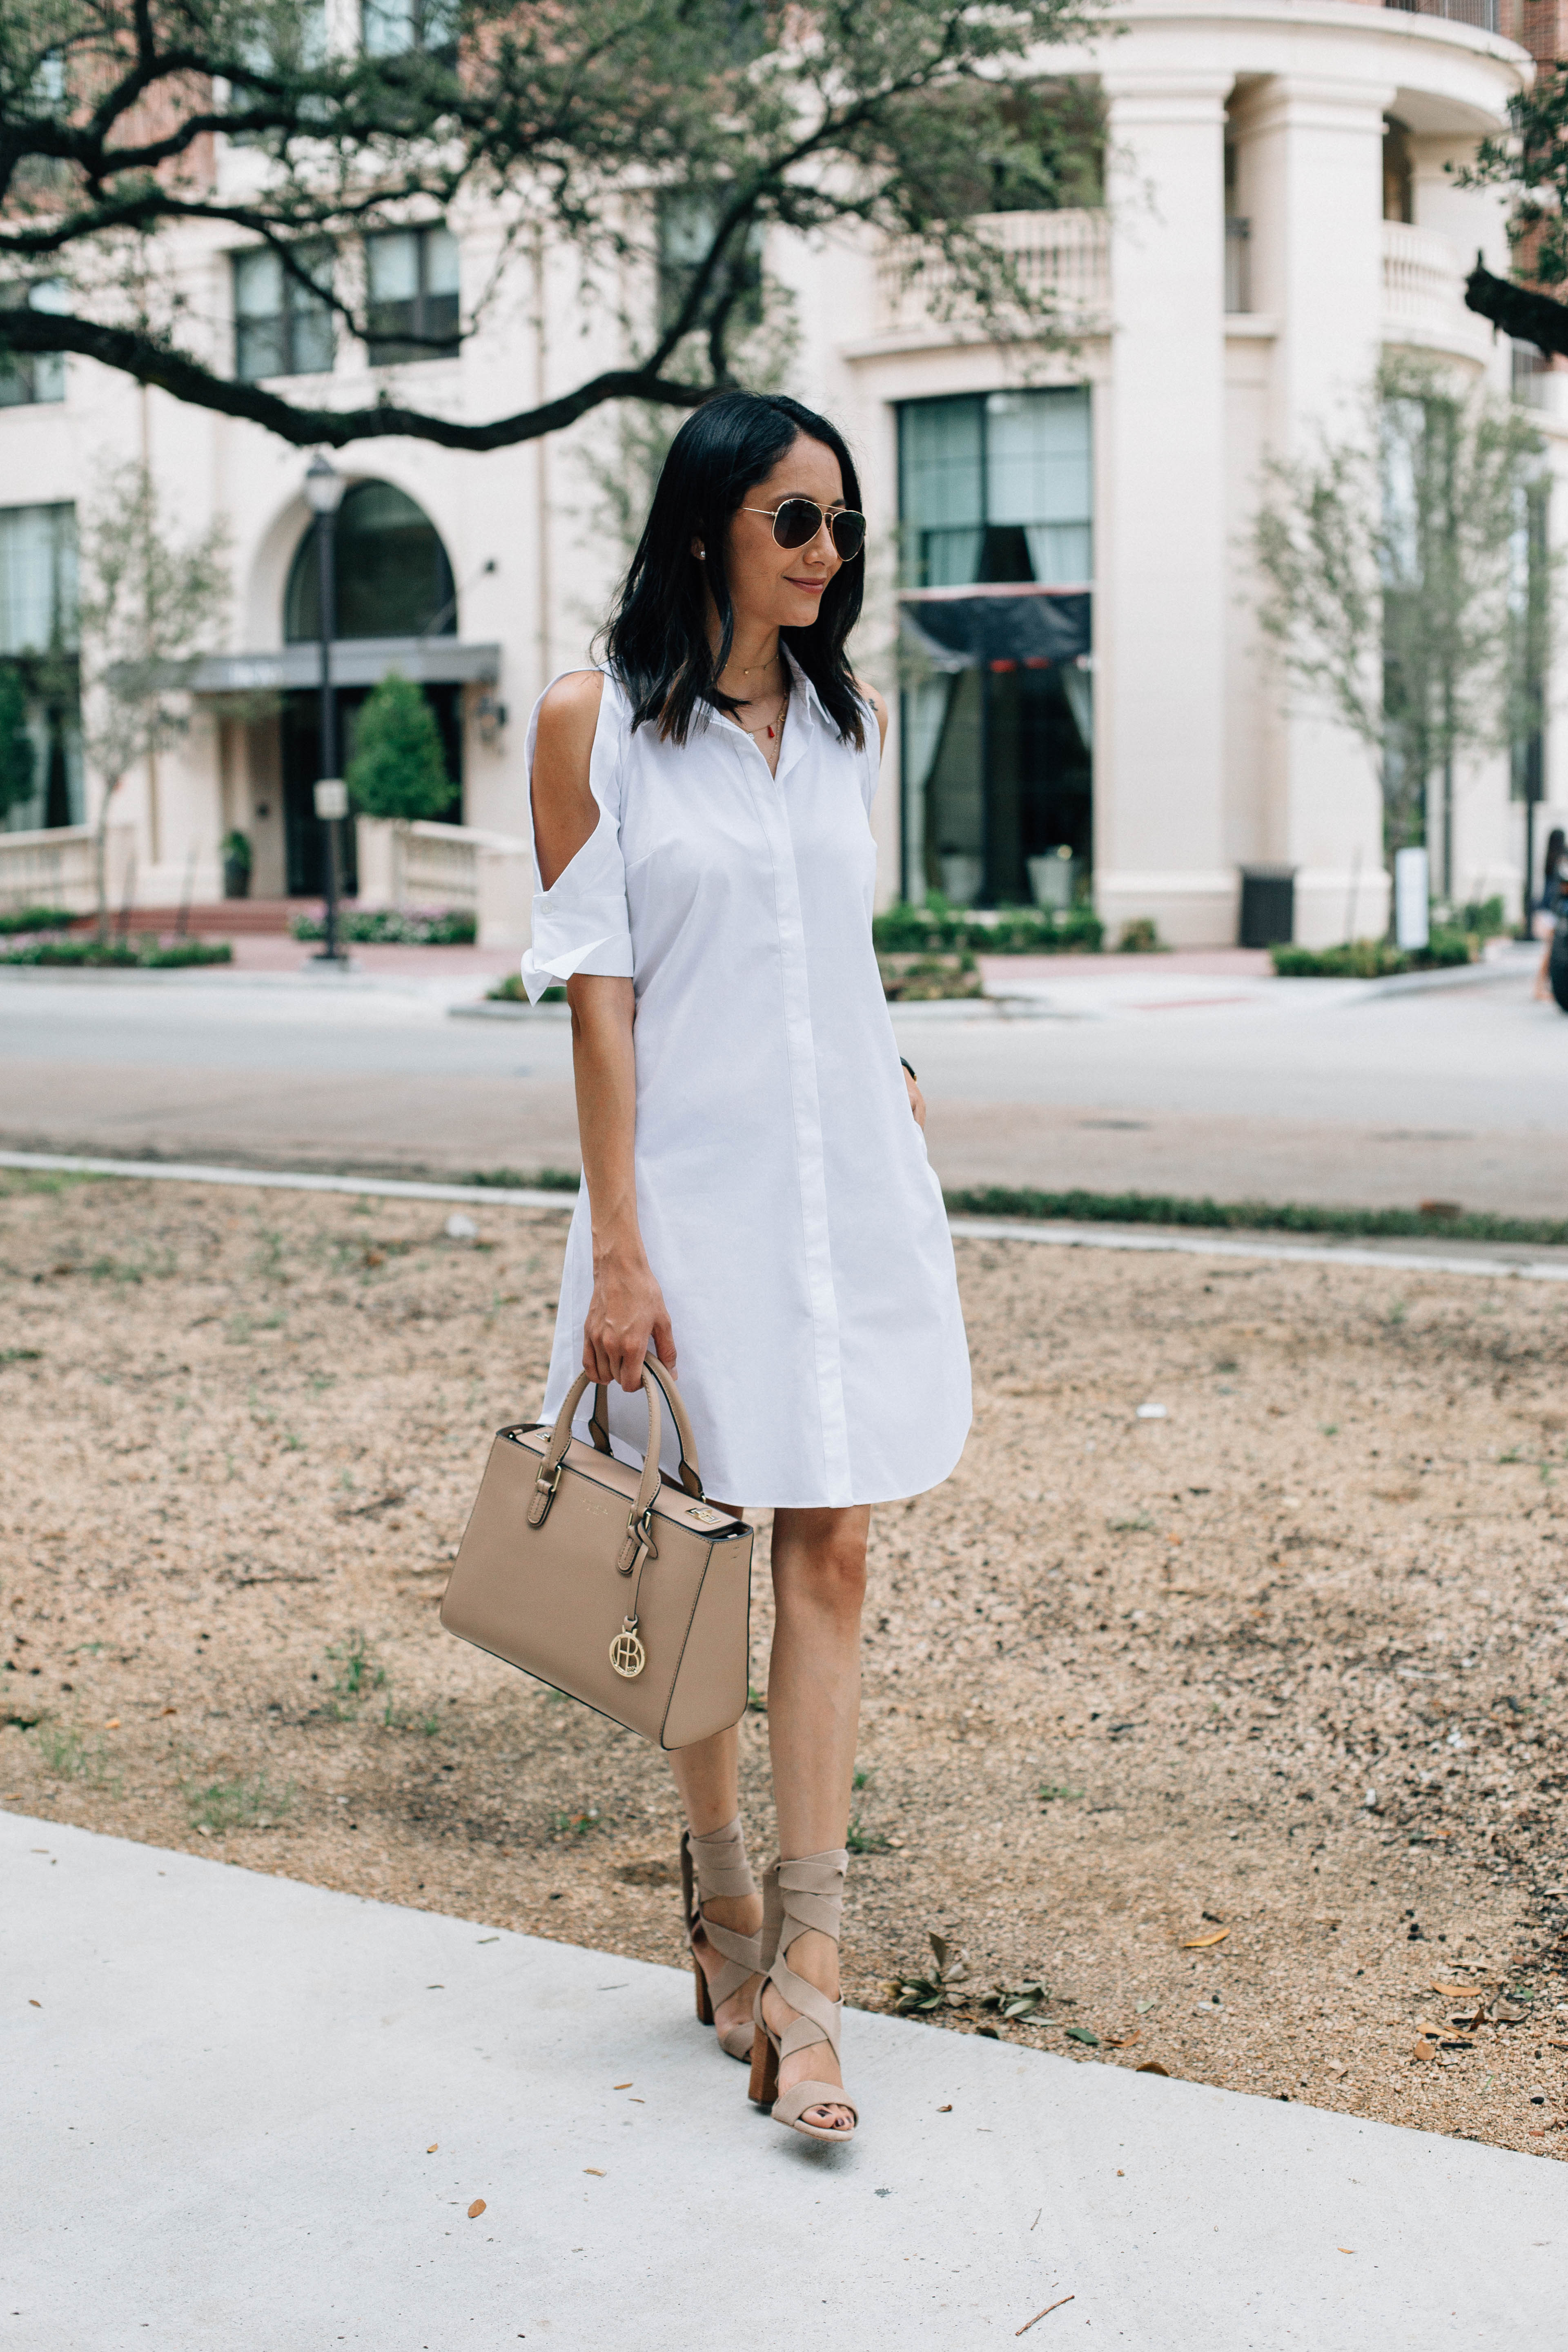 Lifestyle blogger Daily Craving of Daily Craving in a chic look wearing a Rachel Roy white dress and Henri Bendel bag